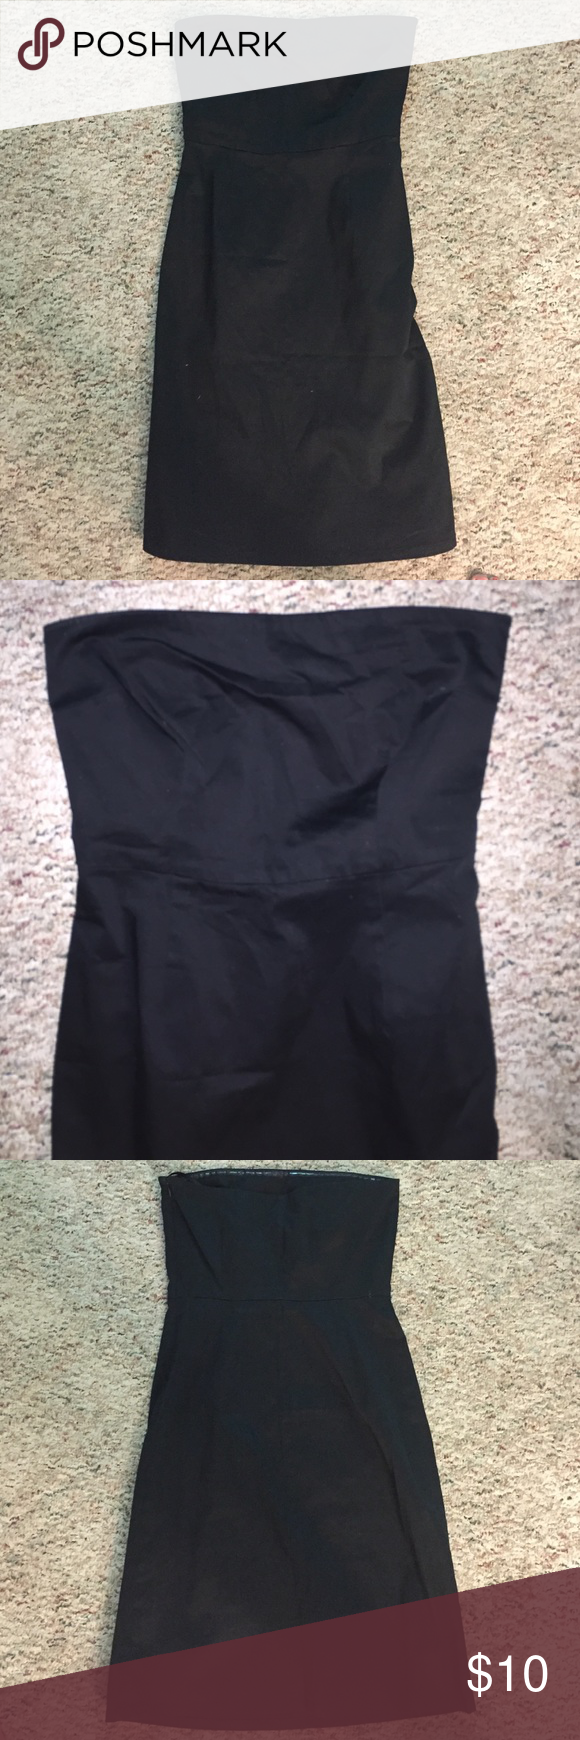 Black dress Mid length black dress that can be used for any causal -nice occasion Old Navy Dresses Strapless